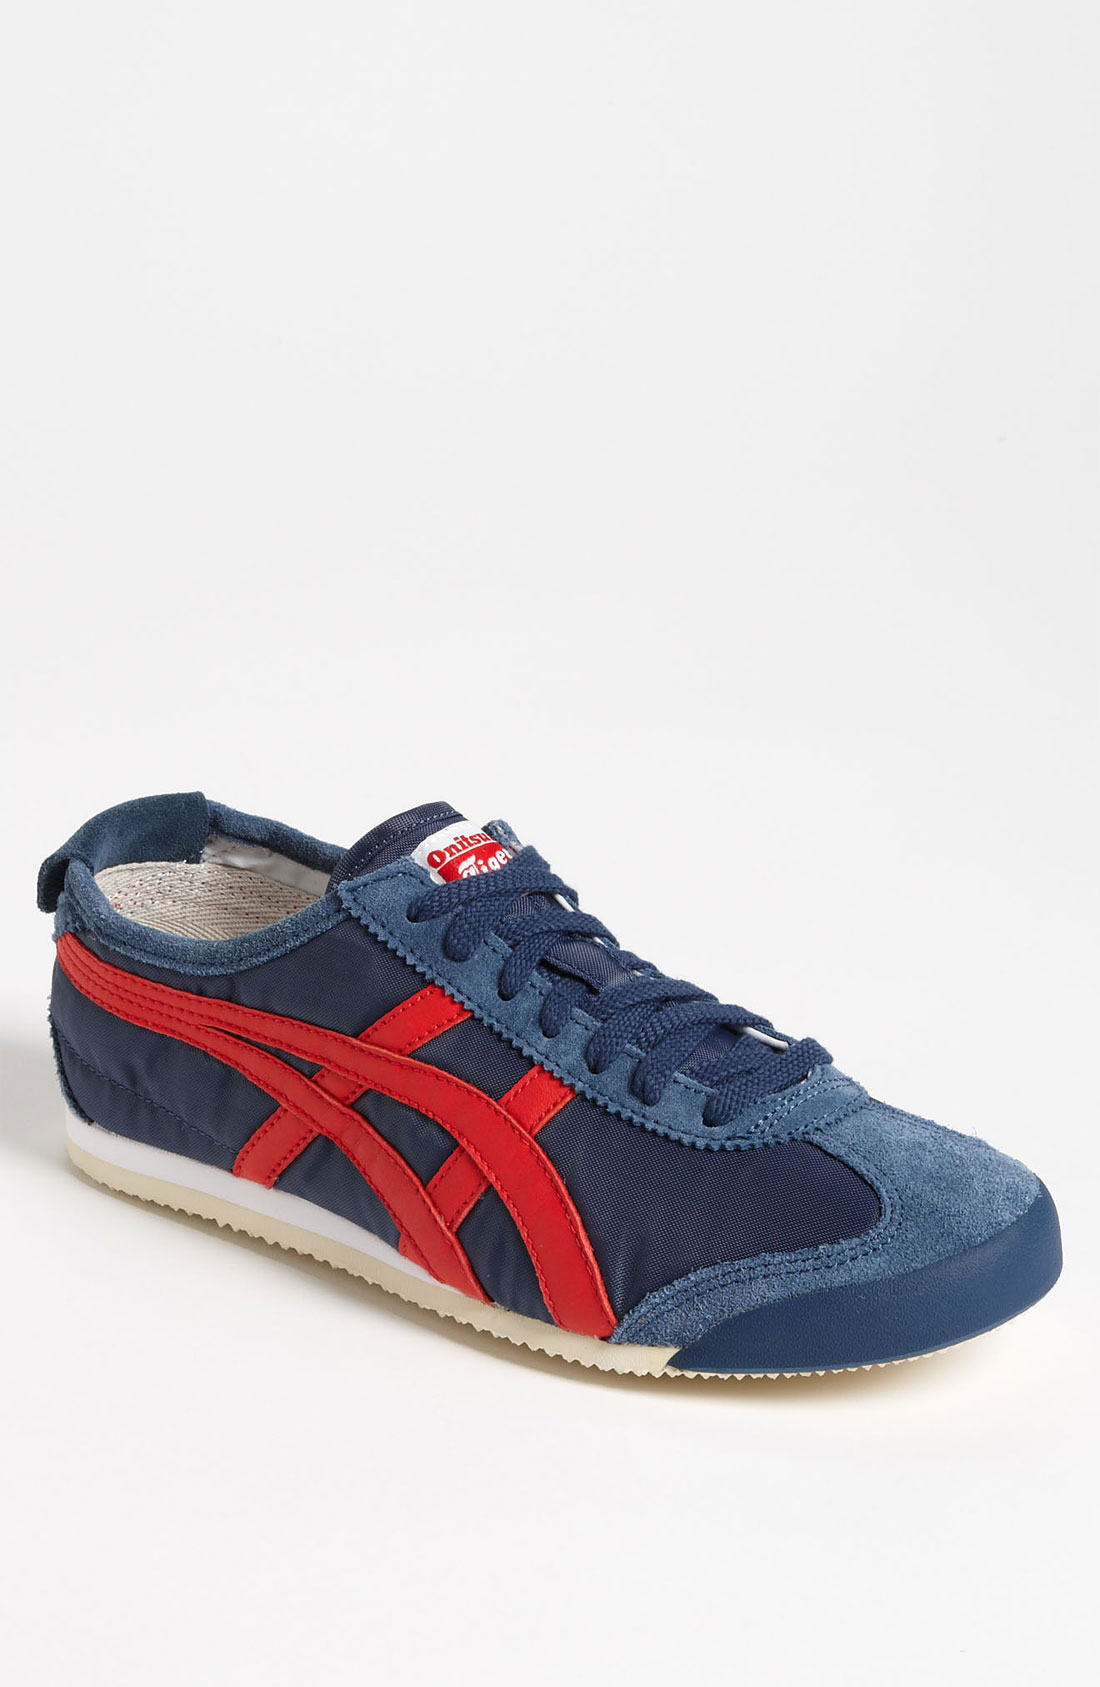 onitsuka tiger mexico 66 sneaker in blue for men navy. Black Bedroom Furniture Sets. Home Design Ideas